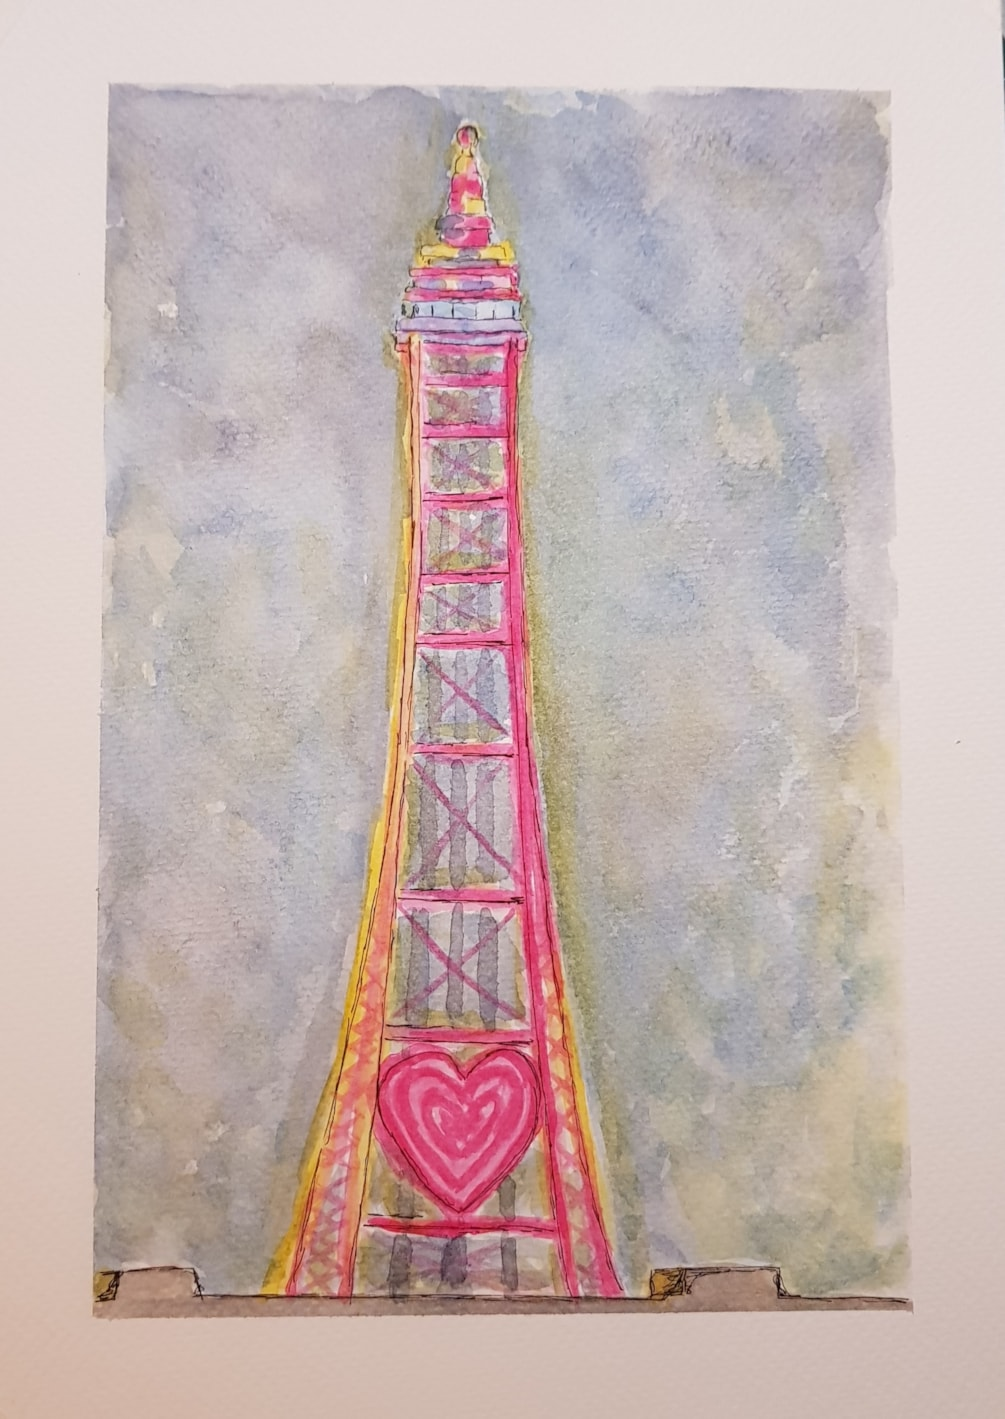 Blackpool tower in all her glory